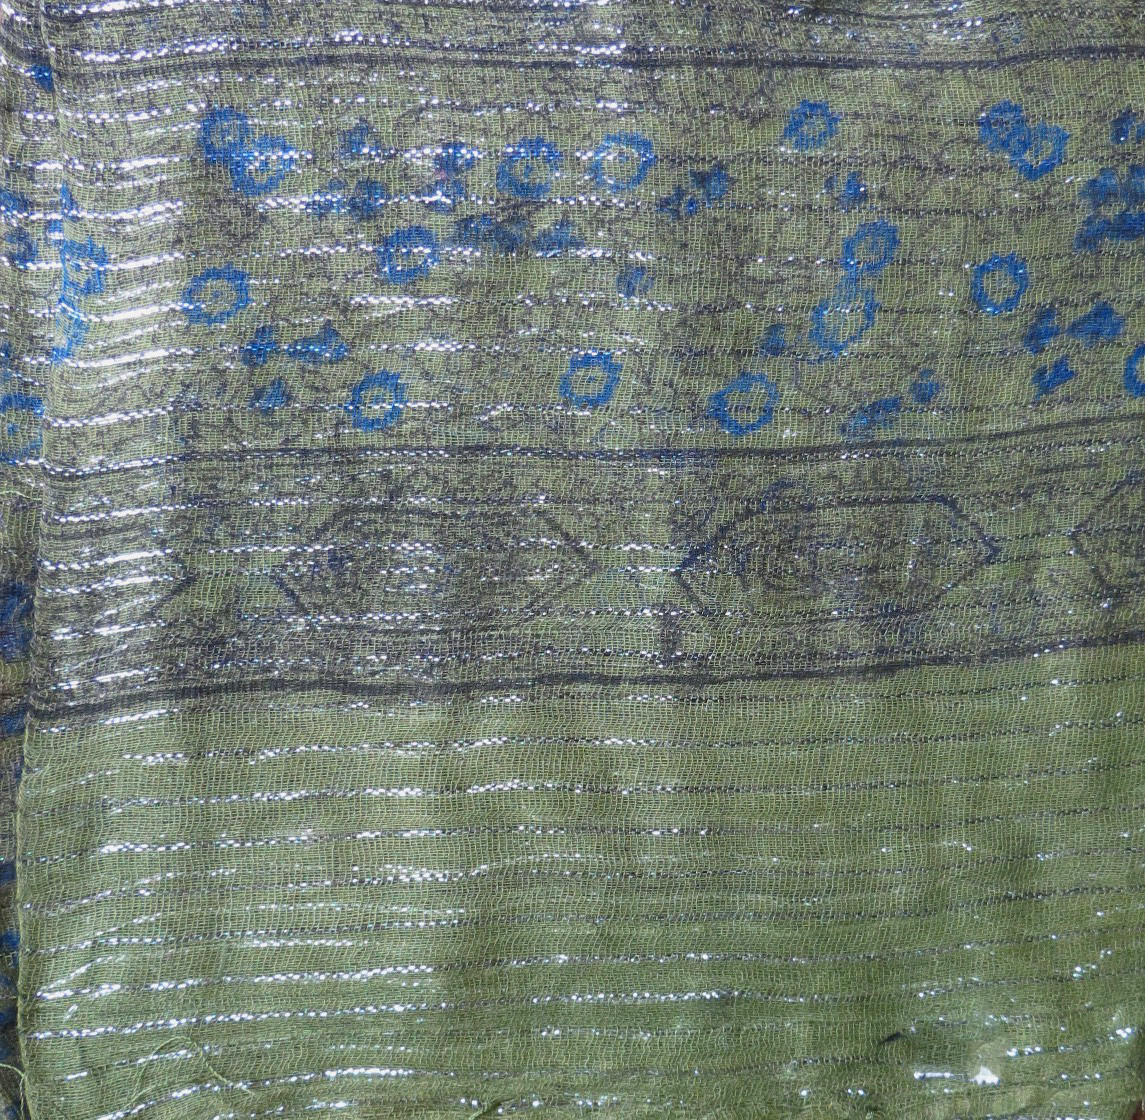 Olive green lurex tichel with blue berry flowers